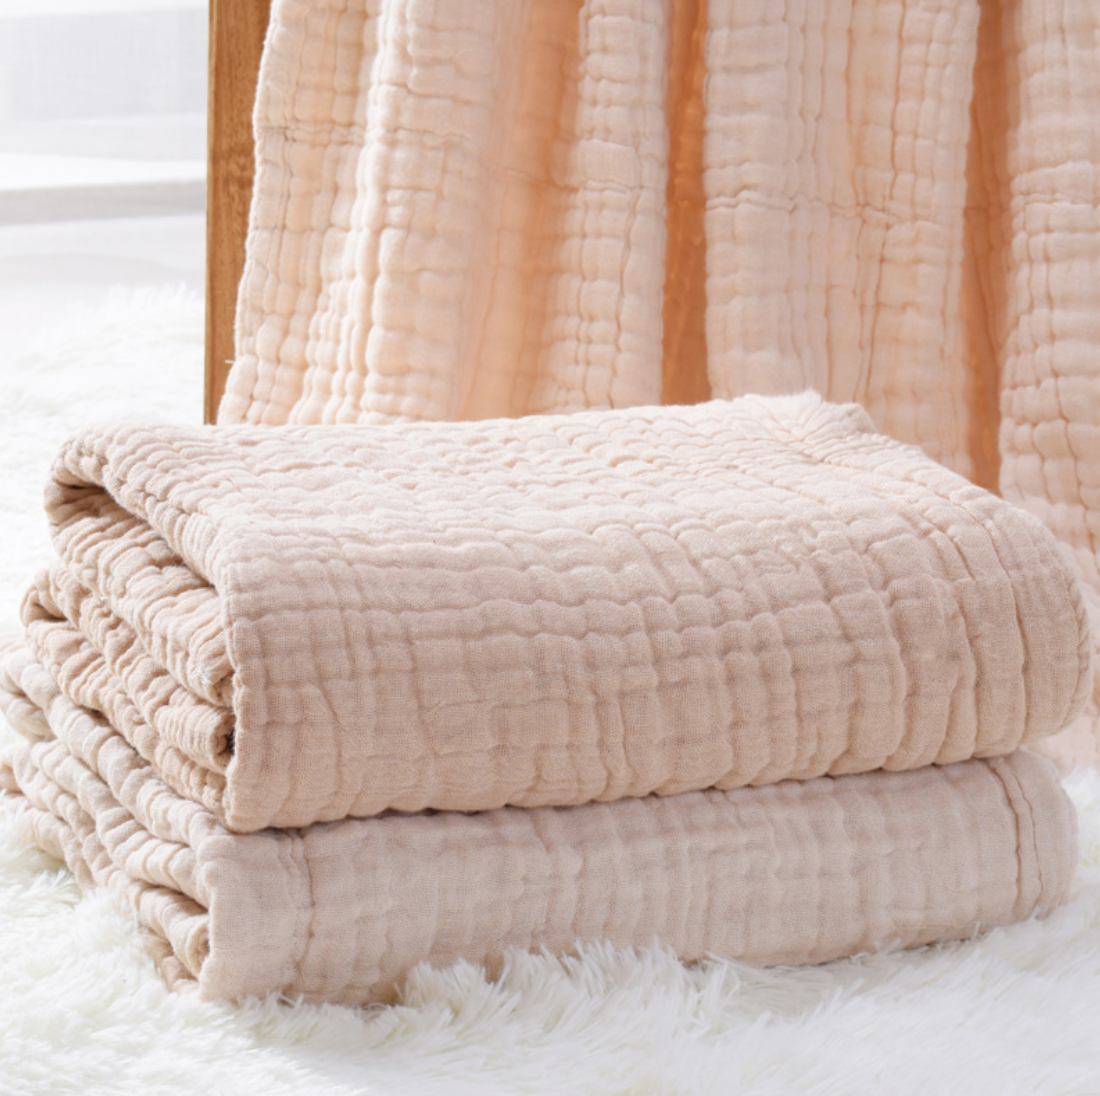 Natural Color Original Yarn 6-Layer 100% Organic Pure Cotton Towel Sheet Thin Quilt Blanket for Baby